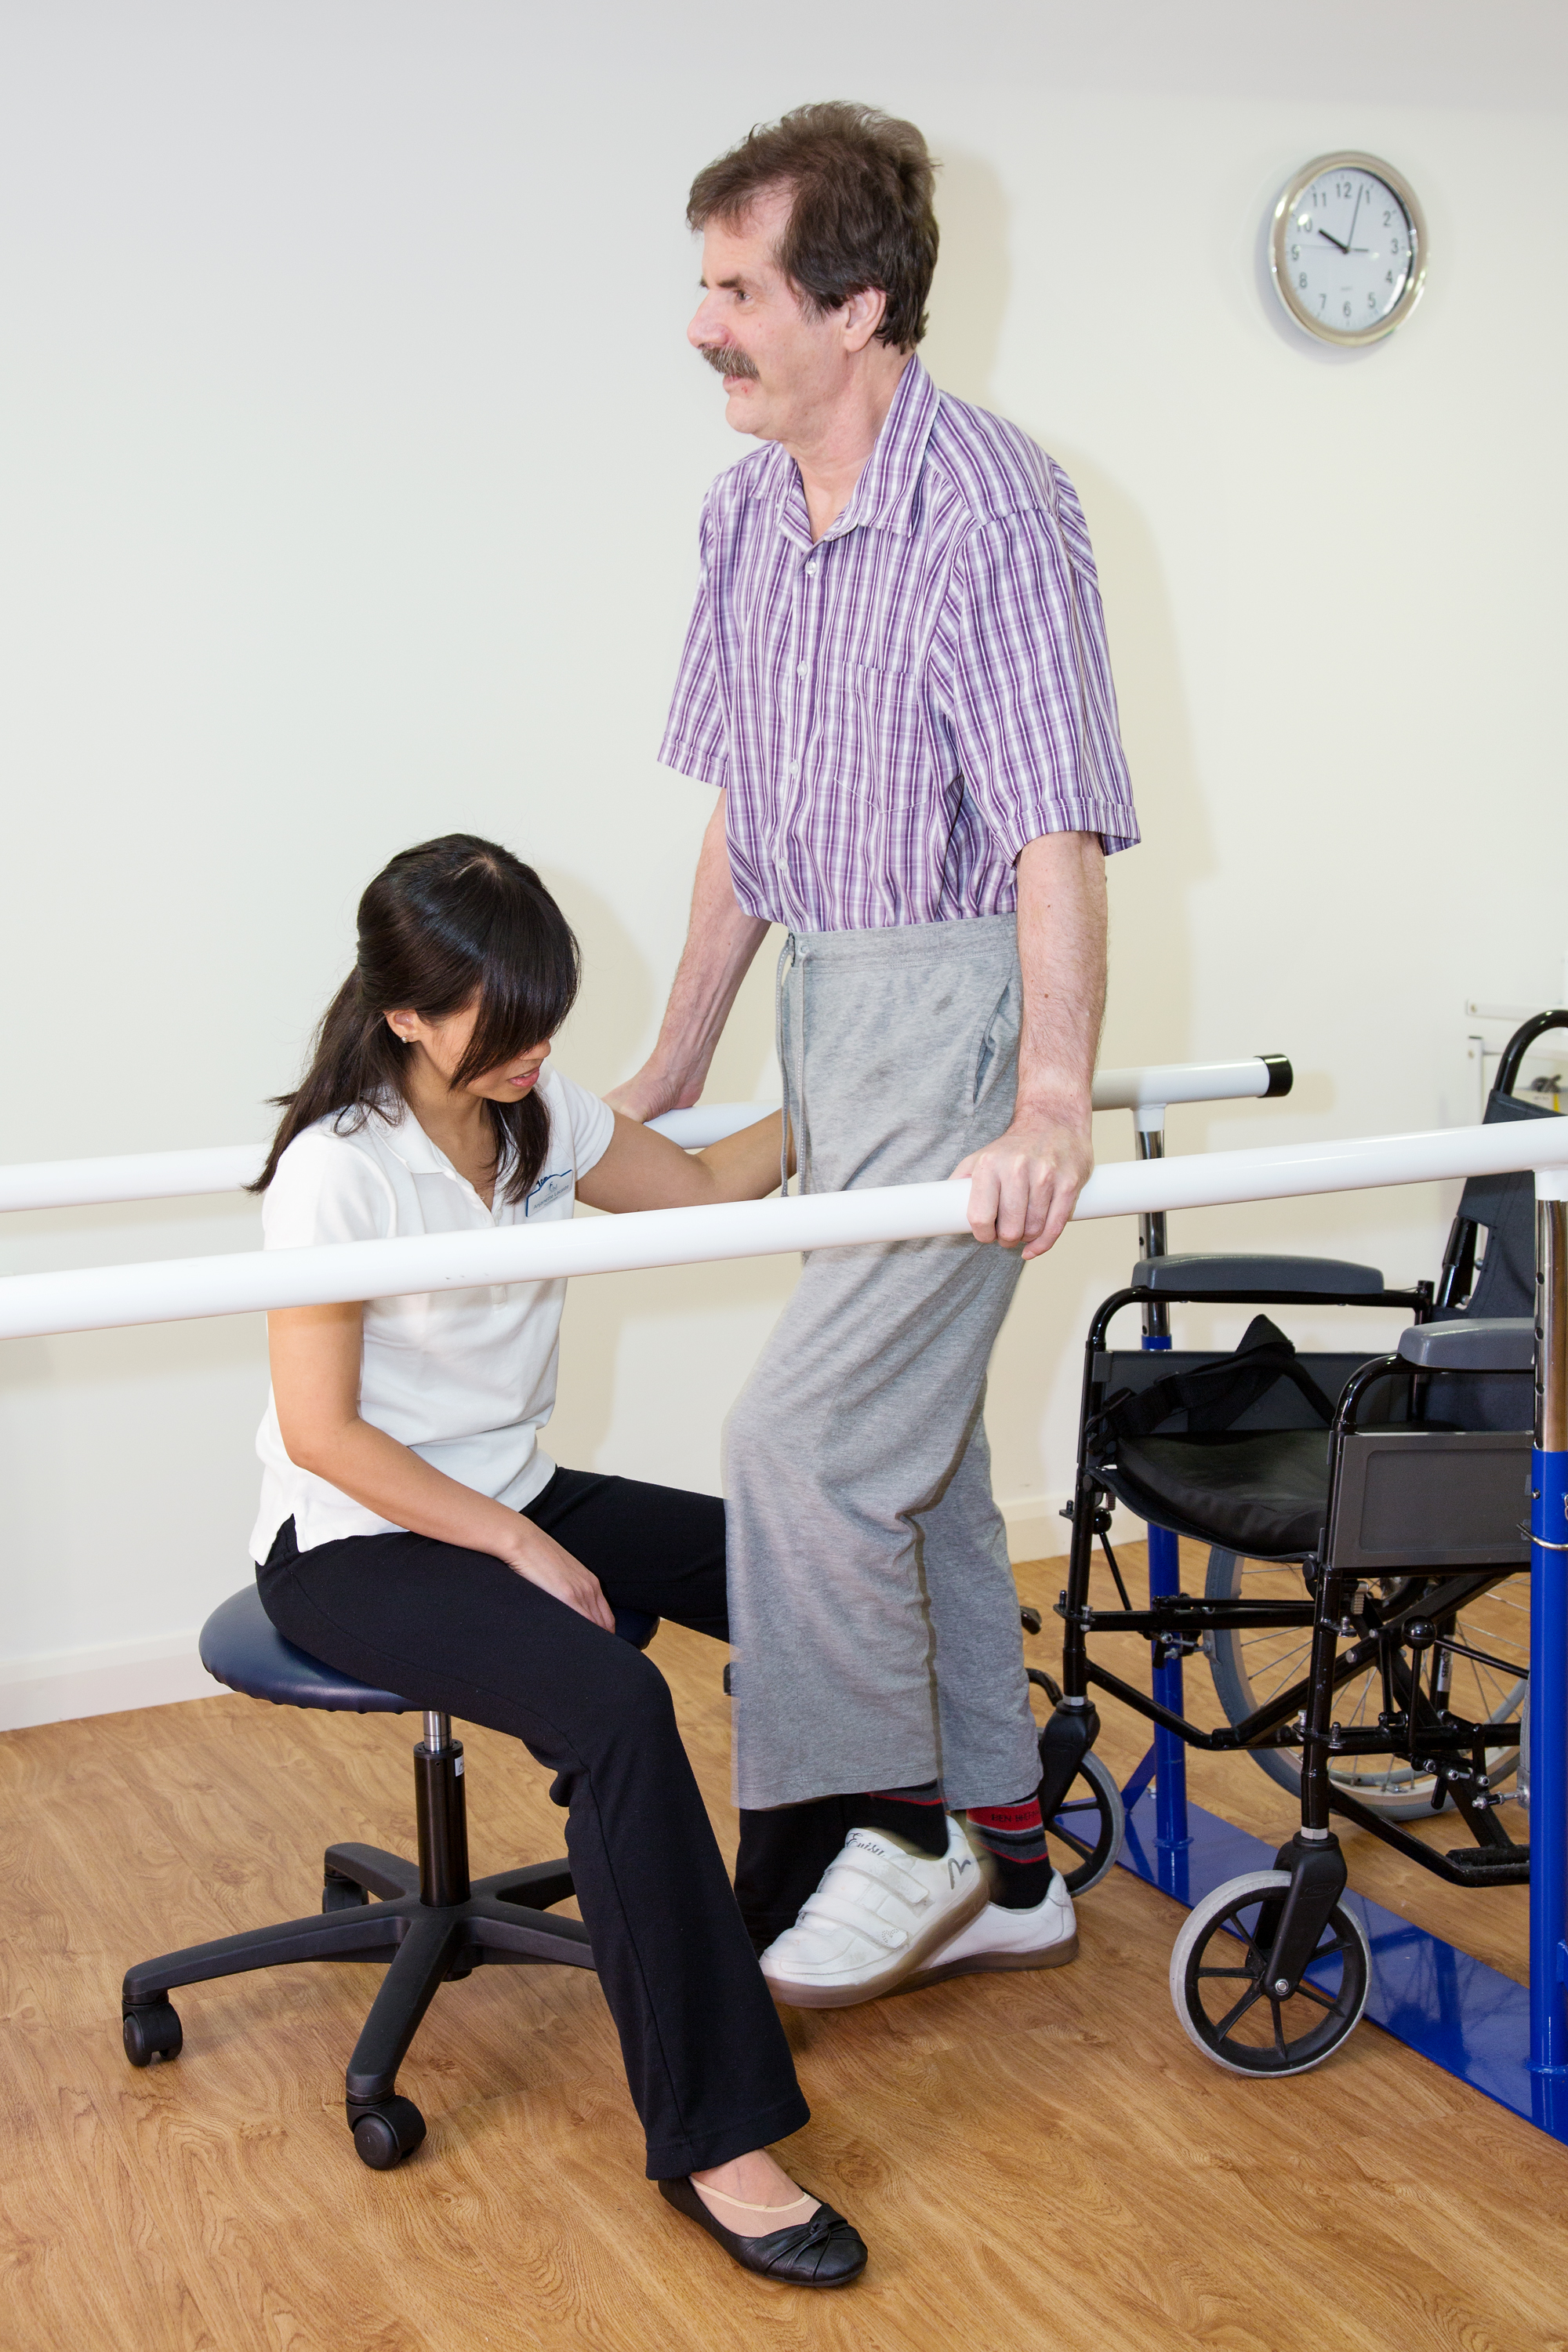 we provide the following services - Stroke rehabilitationSpinal Injury rehabilitationTracheostomy careOrthopaedic rehabilitationLong-term complex disability management